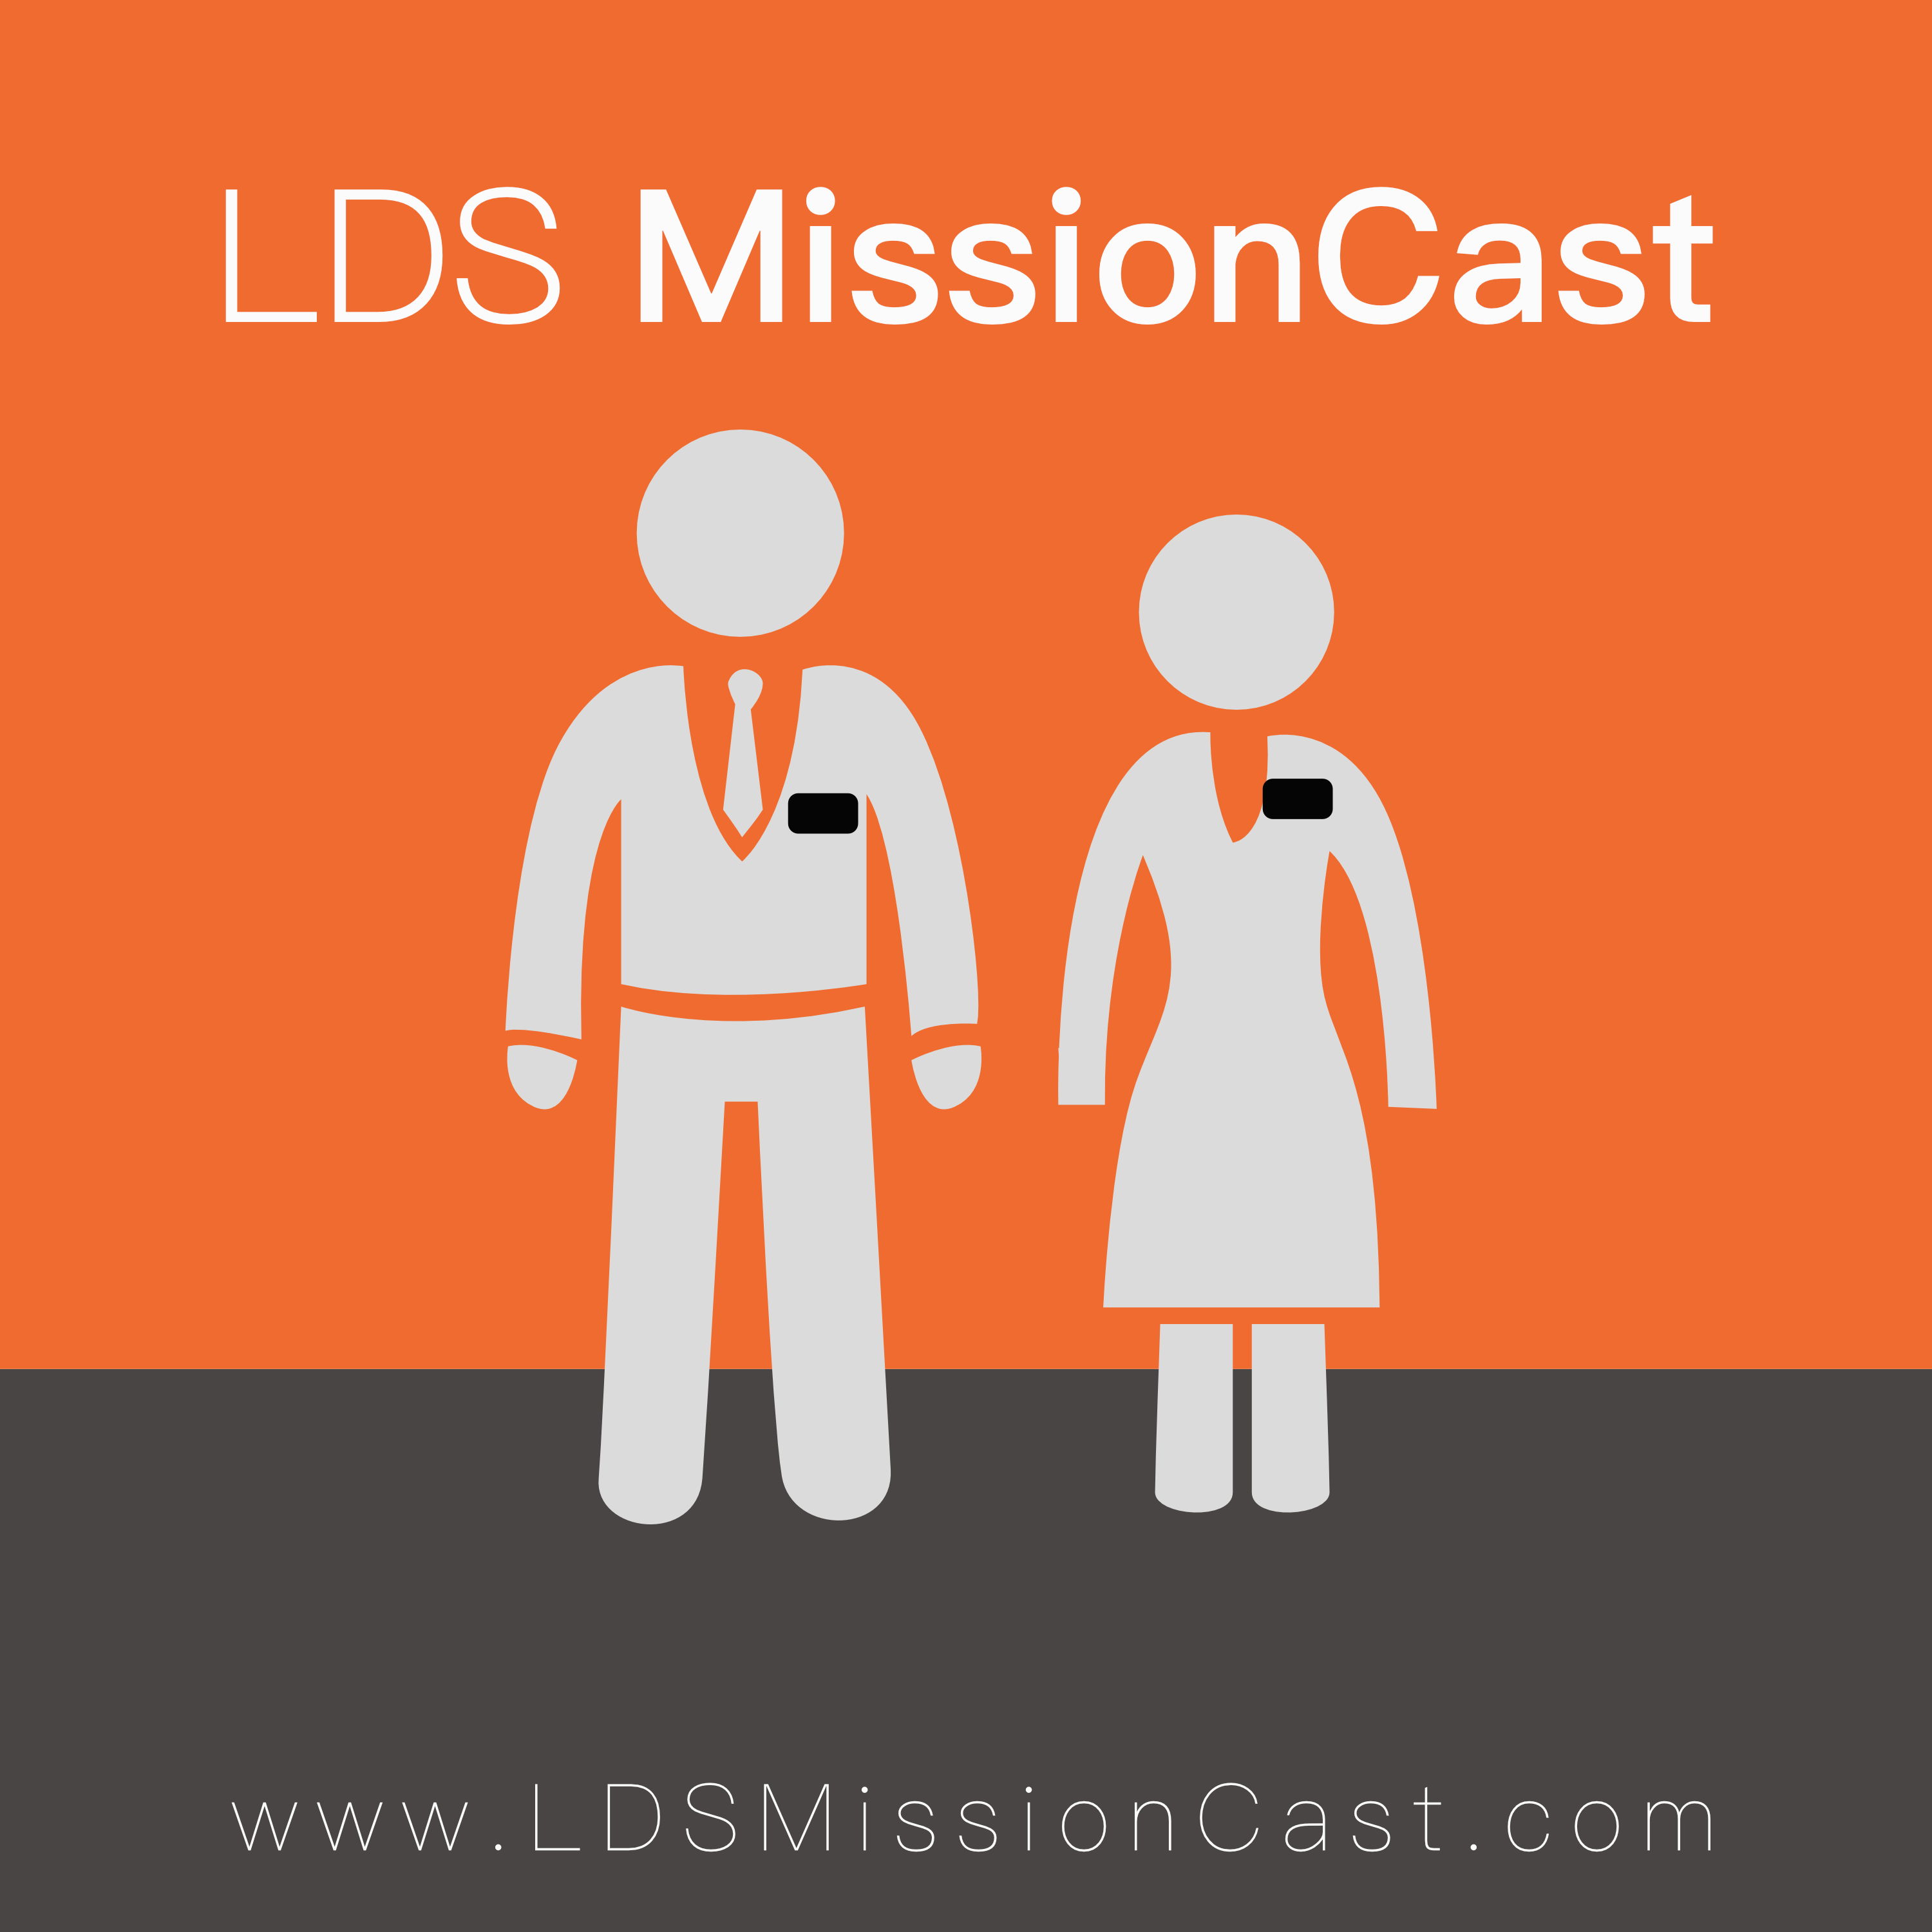 022 Lds Missioncast Podcast Logo Essay Example Org Wondrous Essays Lds.org On Polygamy Full